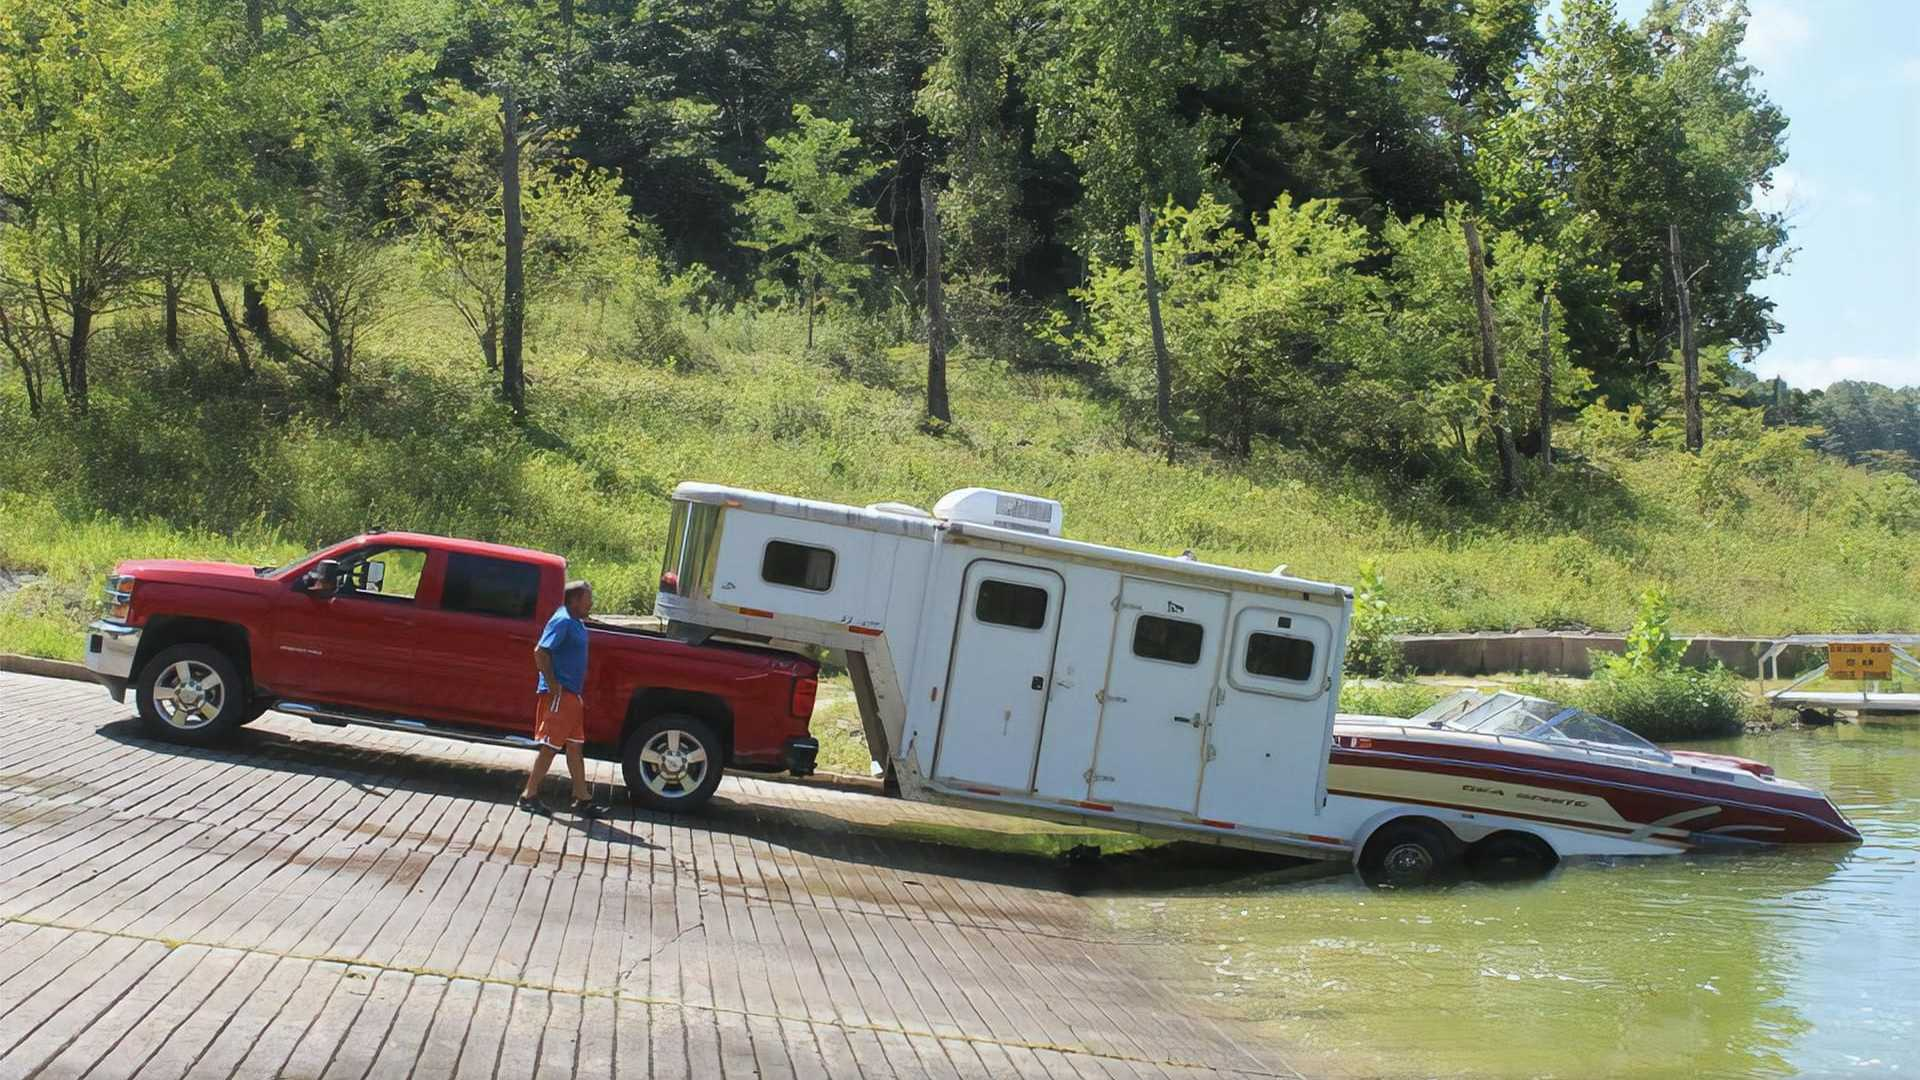 The Boat And Camp Trailer Combines Your Passions Into One Easy Tow